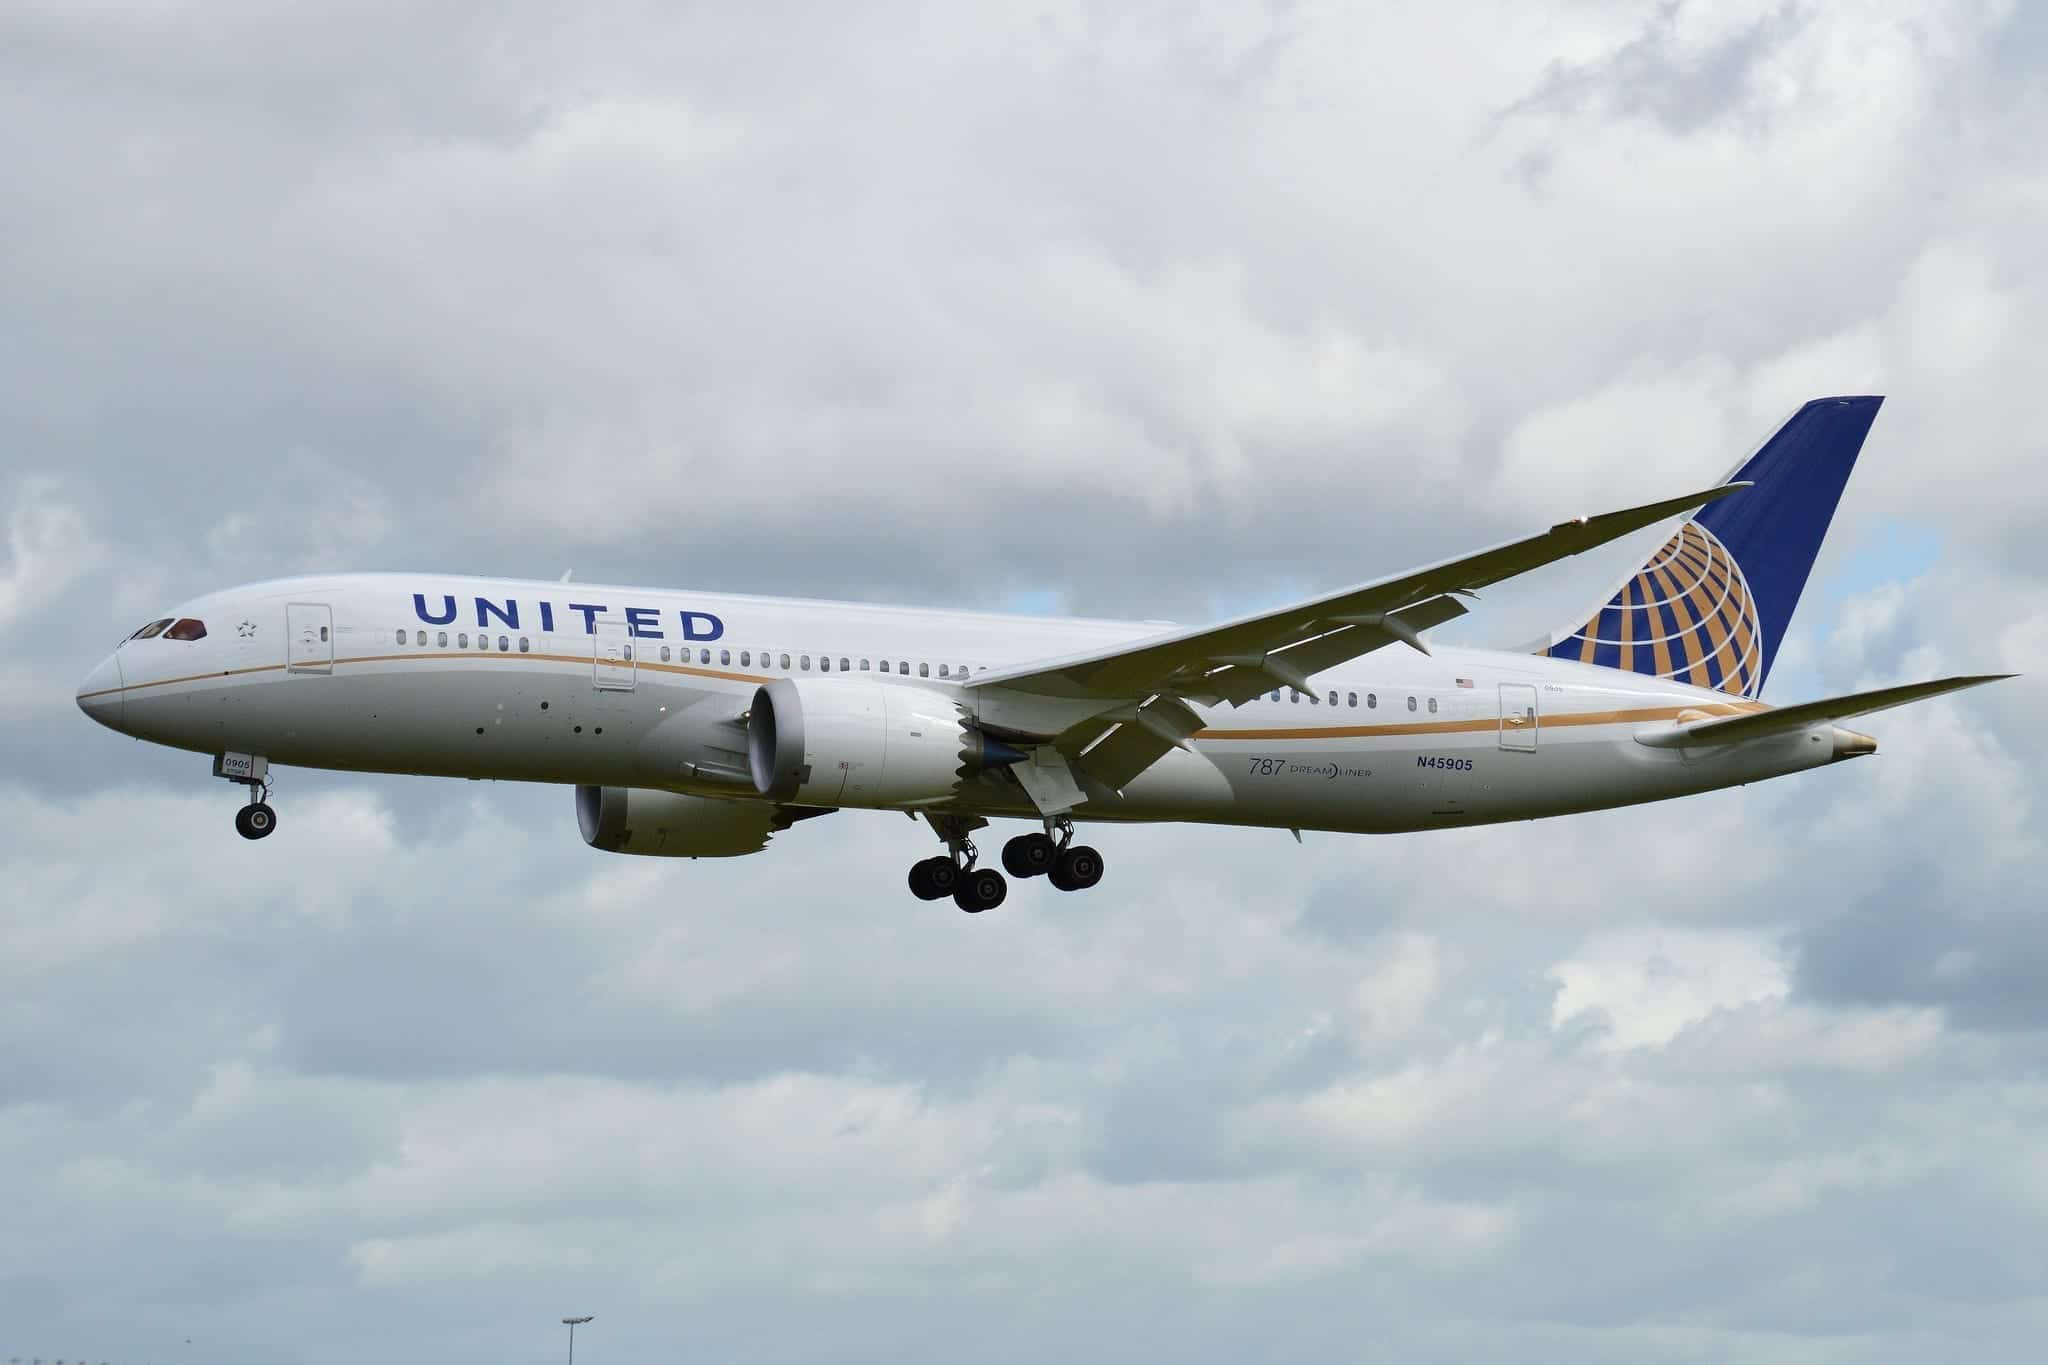 Boeing 787-8 'N45905' United Airlines; photo by Alan Wilson, via Flickr, CC BY-SA 2.0, no changes.